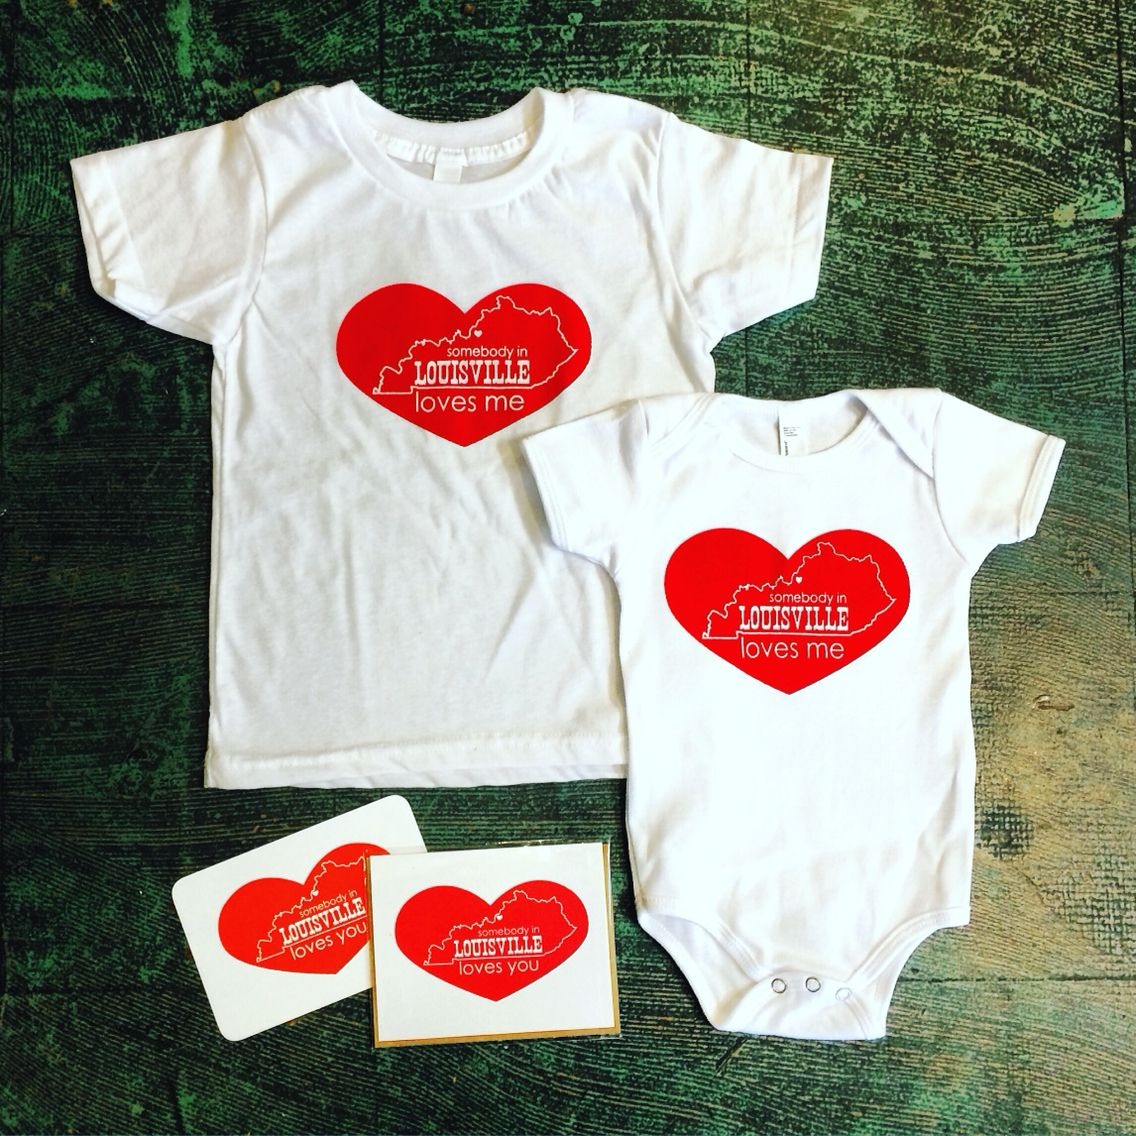 Restocking all these #handmade cuties today! ❤️ toddler tees available in size 2-6 $22 / onesies available in 3-6mo, 6-12mo, 12-18mo $20 / #postcards $2 / #notecards $4. All can be found in store or available by commenting below for paypal.  #heytiger #shopheytiger #shopbardstownroad #shopsmall #supporthandmade #supportsmallbusiness #handmadeshop #handmadeisbetter #etsy #etyshop #etsyseller #etsyfinds #somebodylovesme #louisville #kentucky #cute #toddlerswag #toddlerfashion #babyfashion…